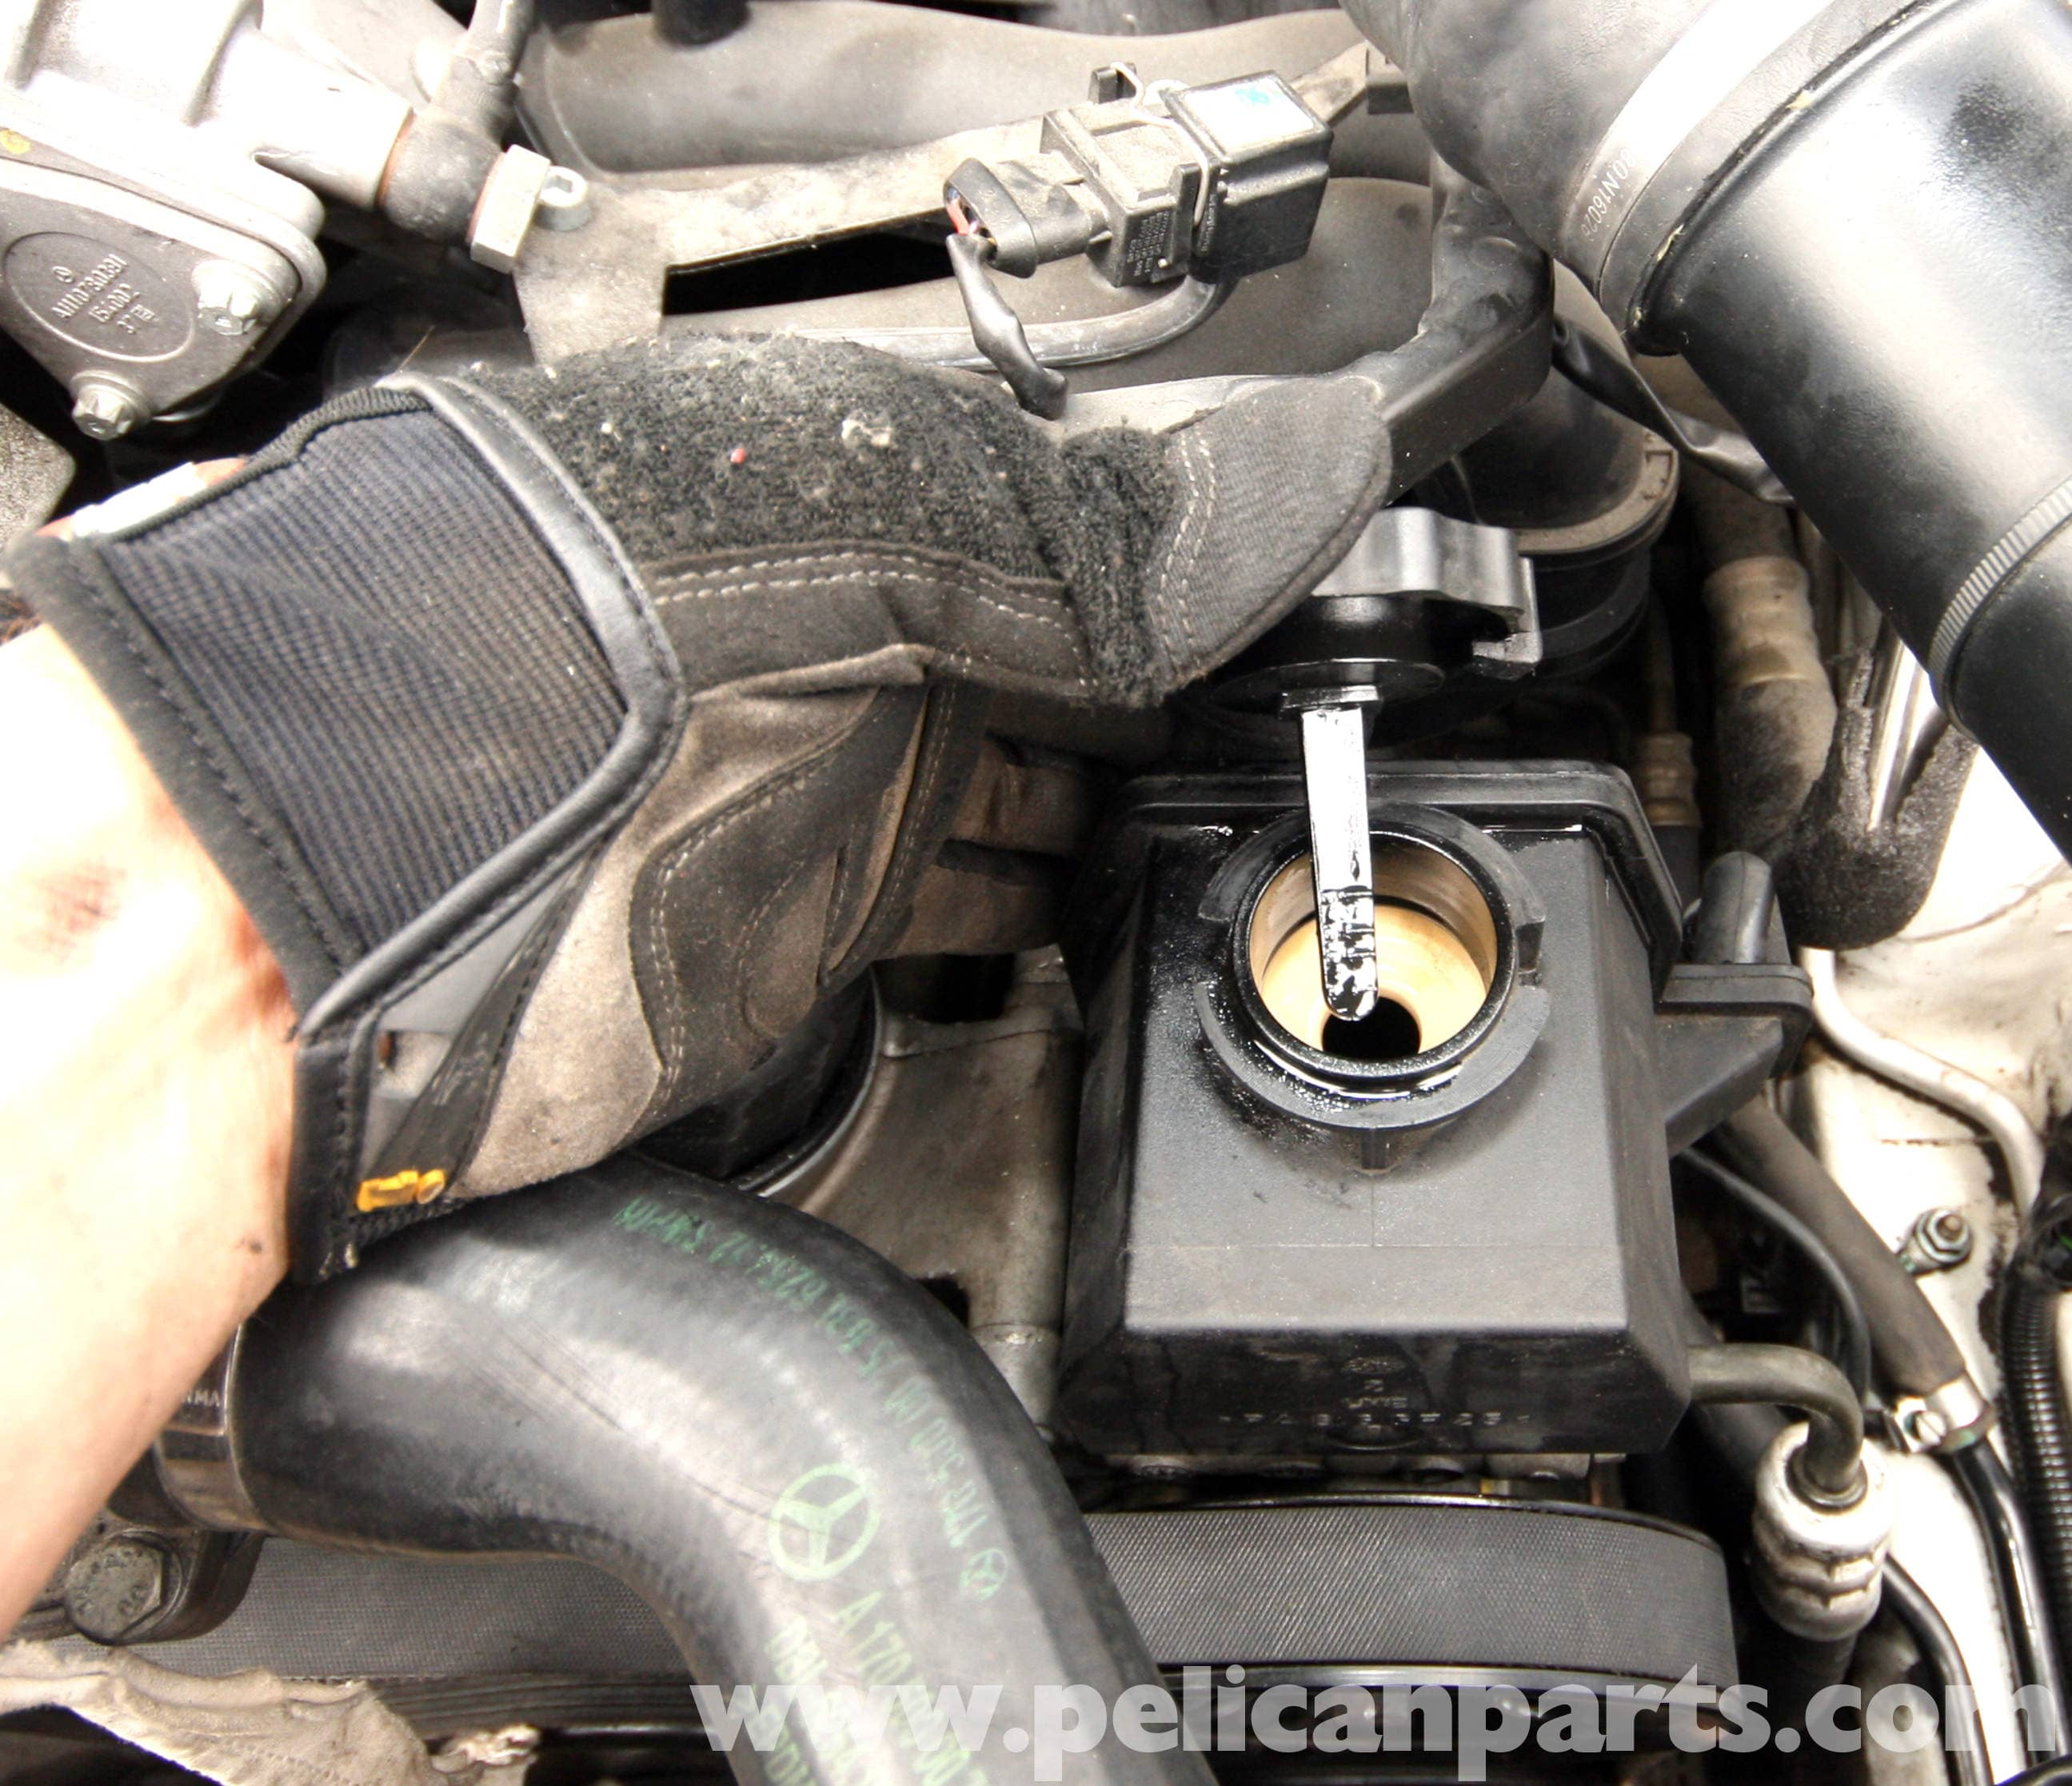 Check Power Steering Fluid >> Mercedes-Benz SLK 230 Power Steering Pump Removal | 1998 ...